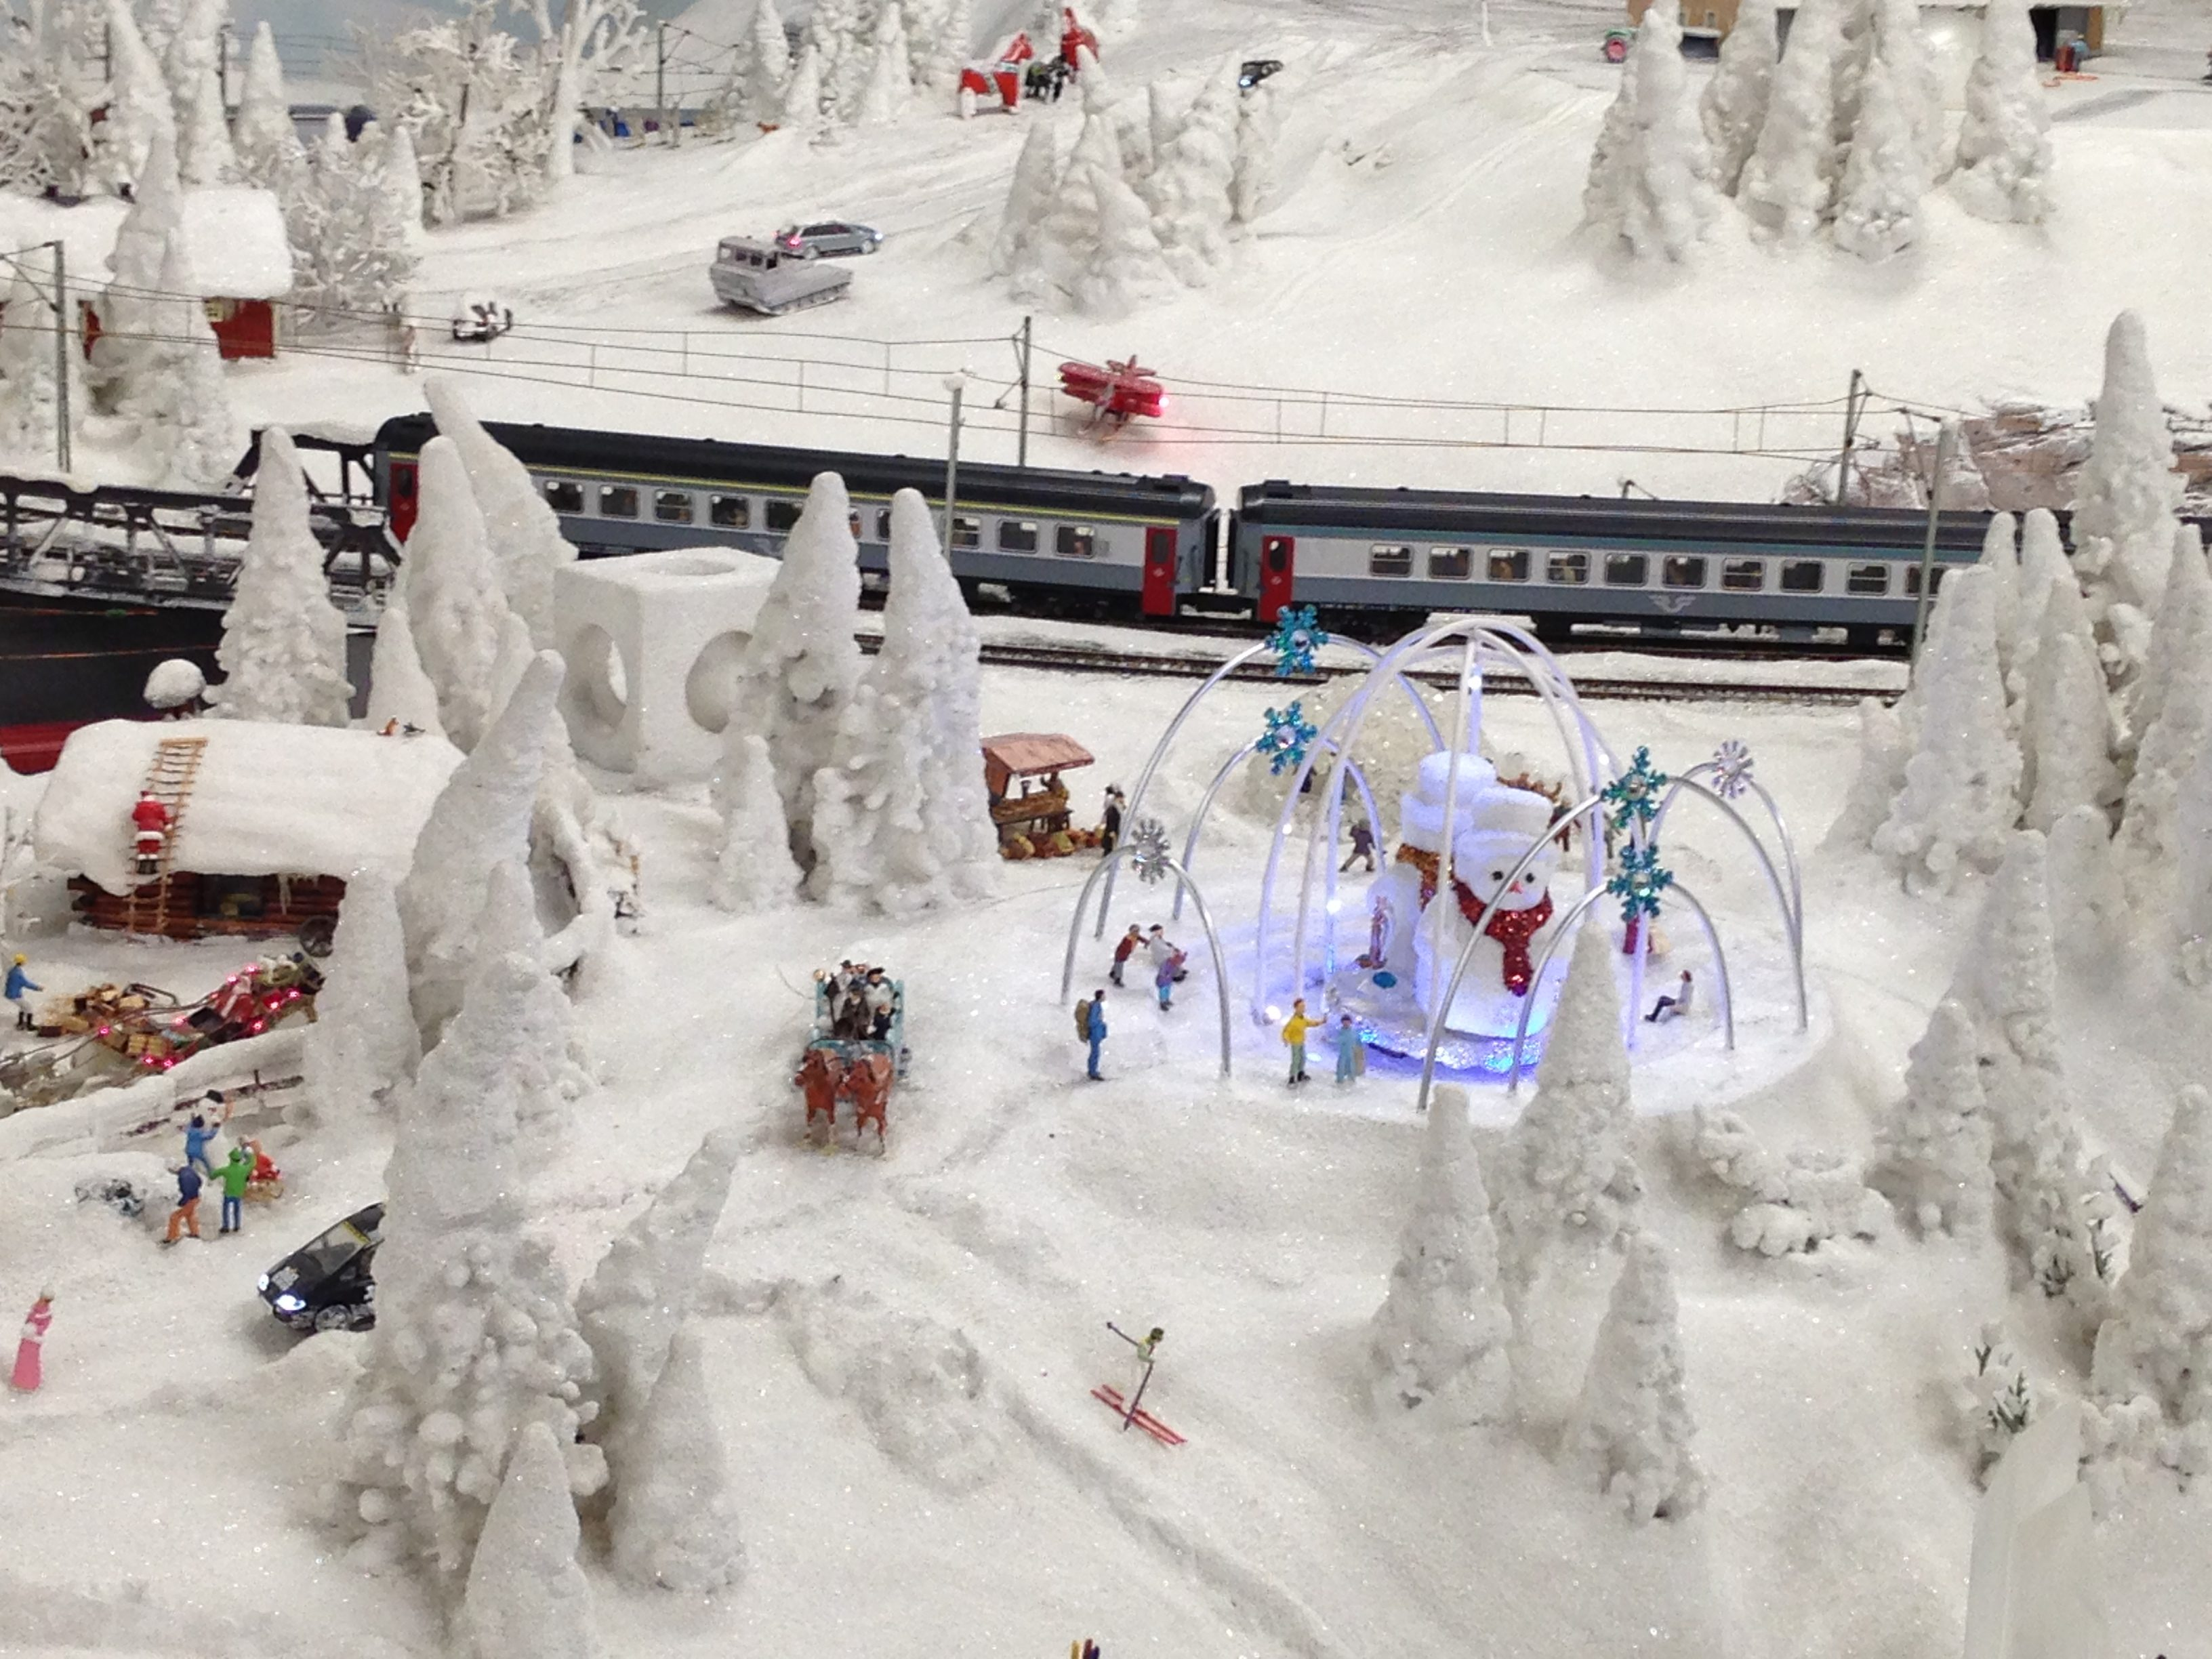 The North Pole in miniature